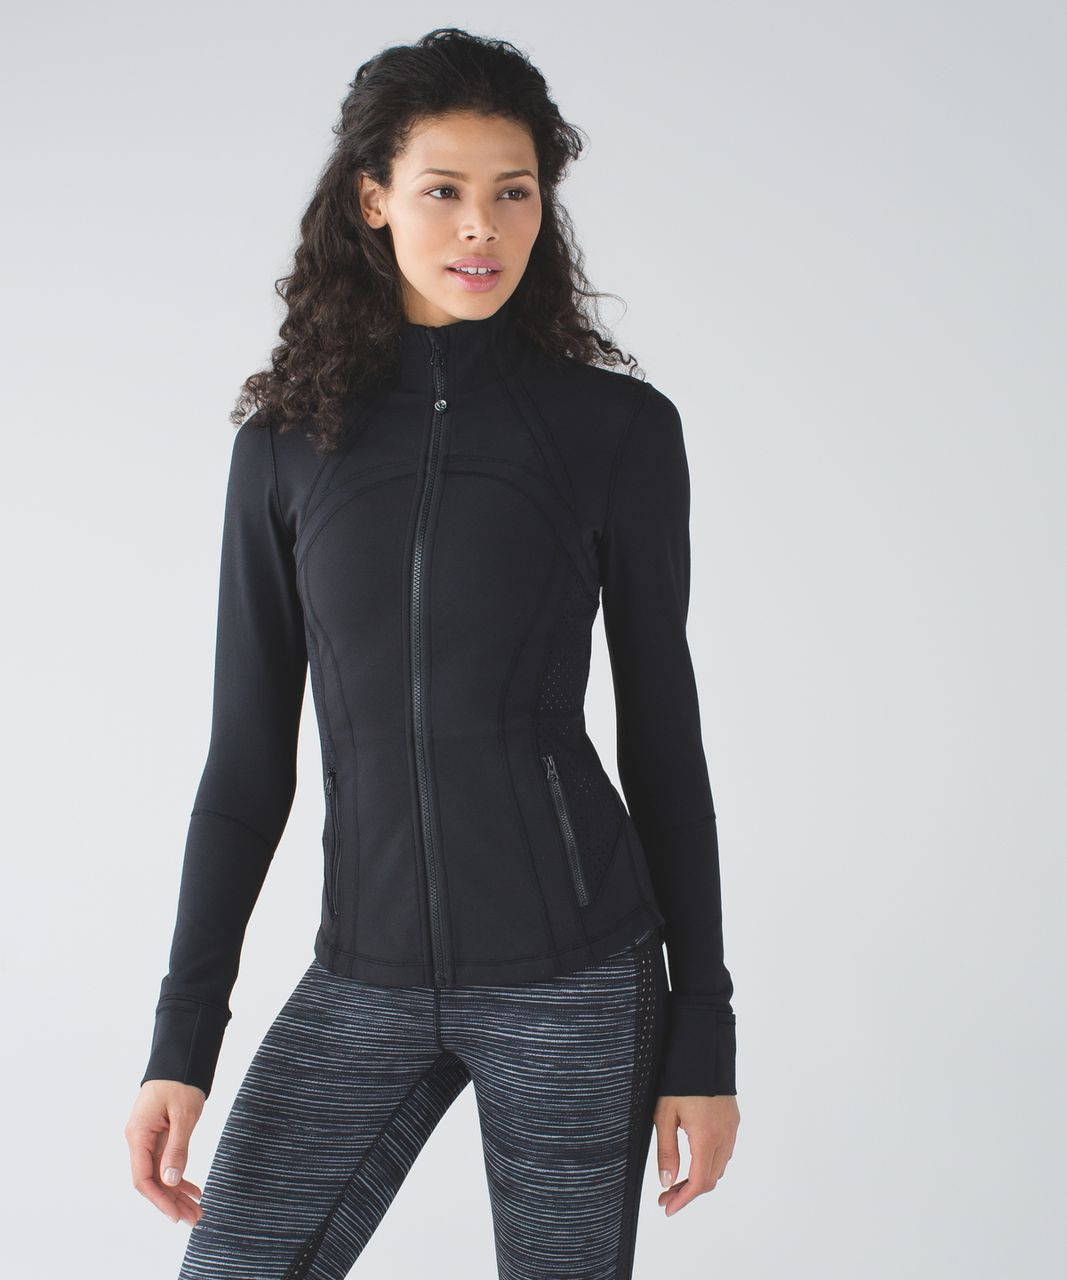 Lululemon Define Jacket - Black (Third Release)